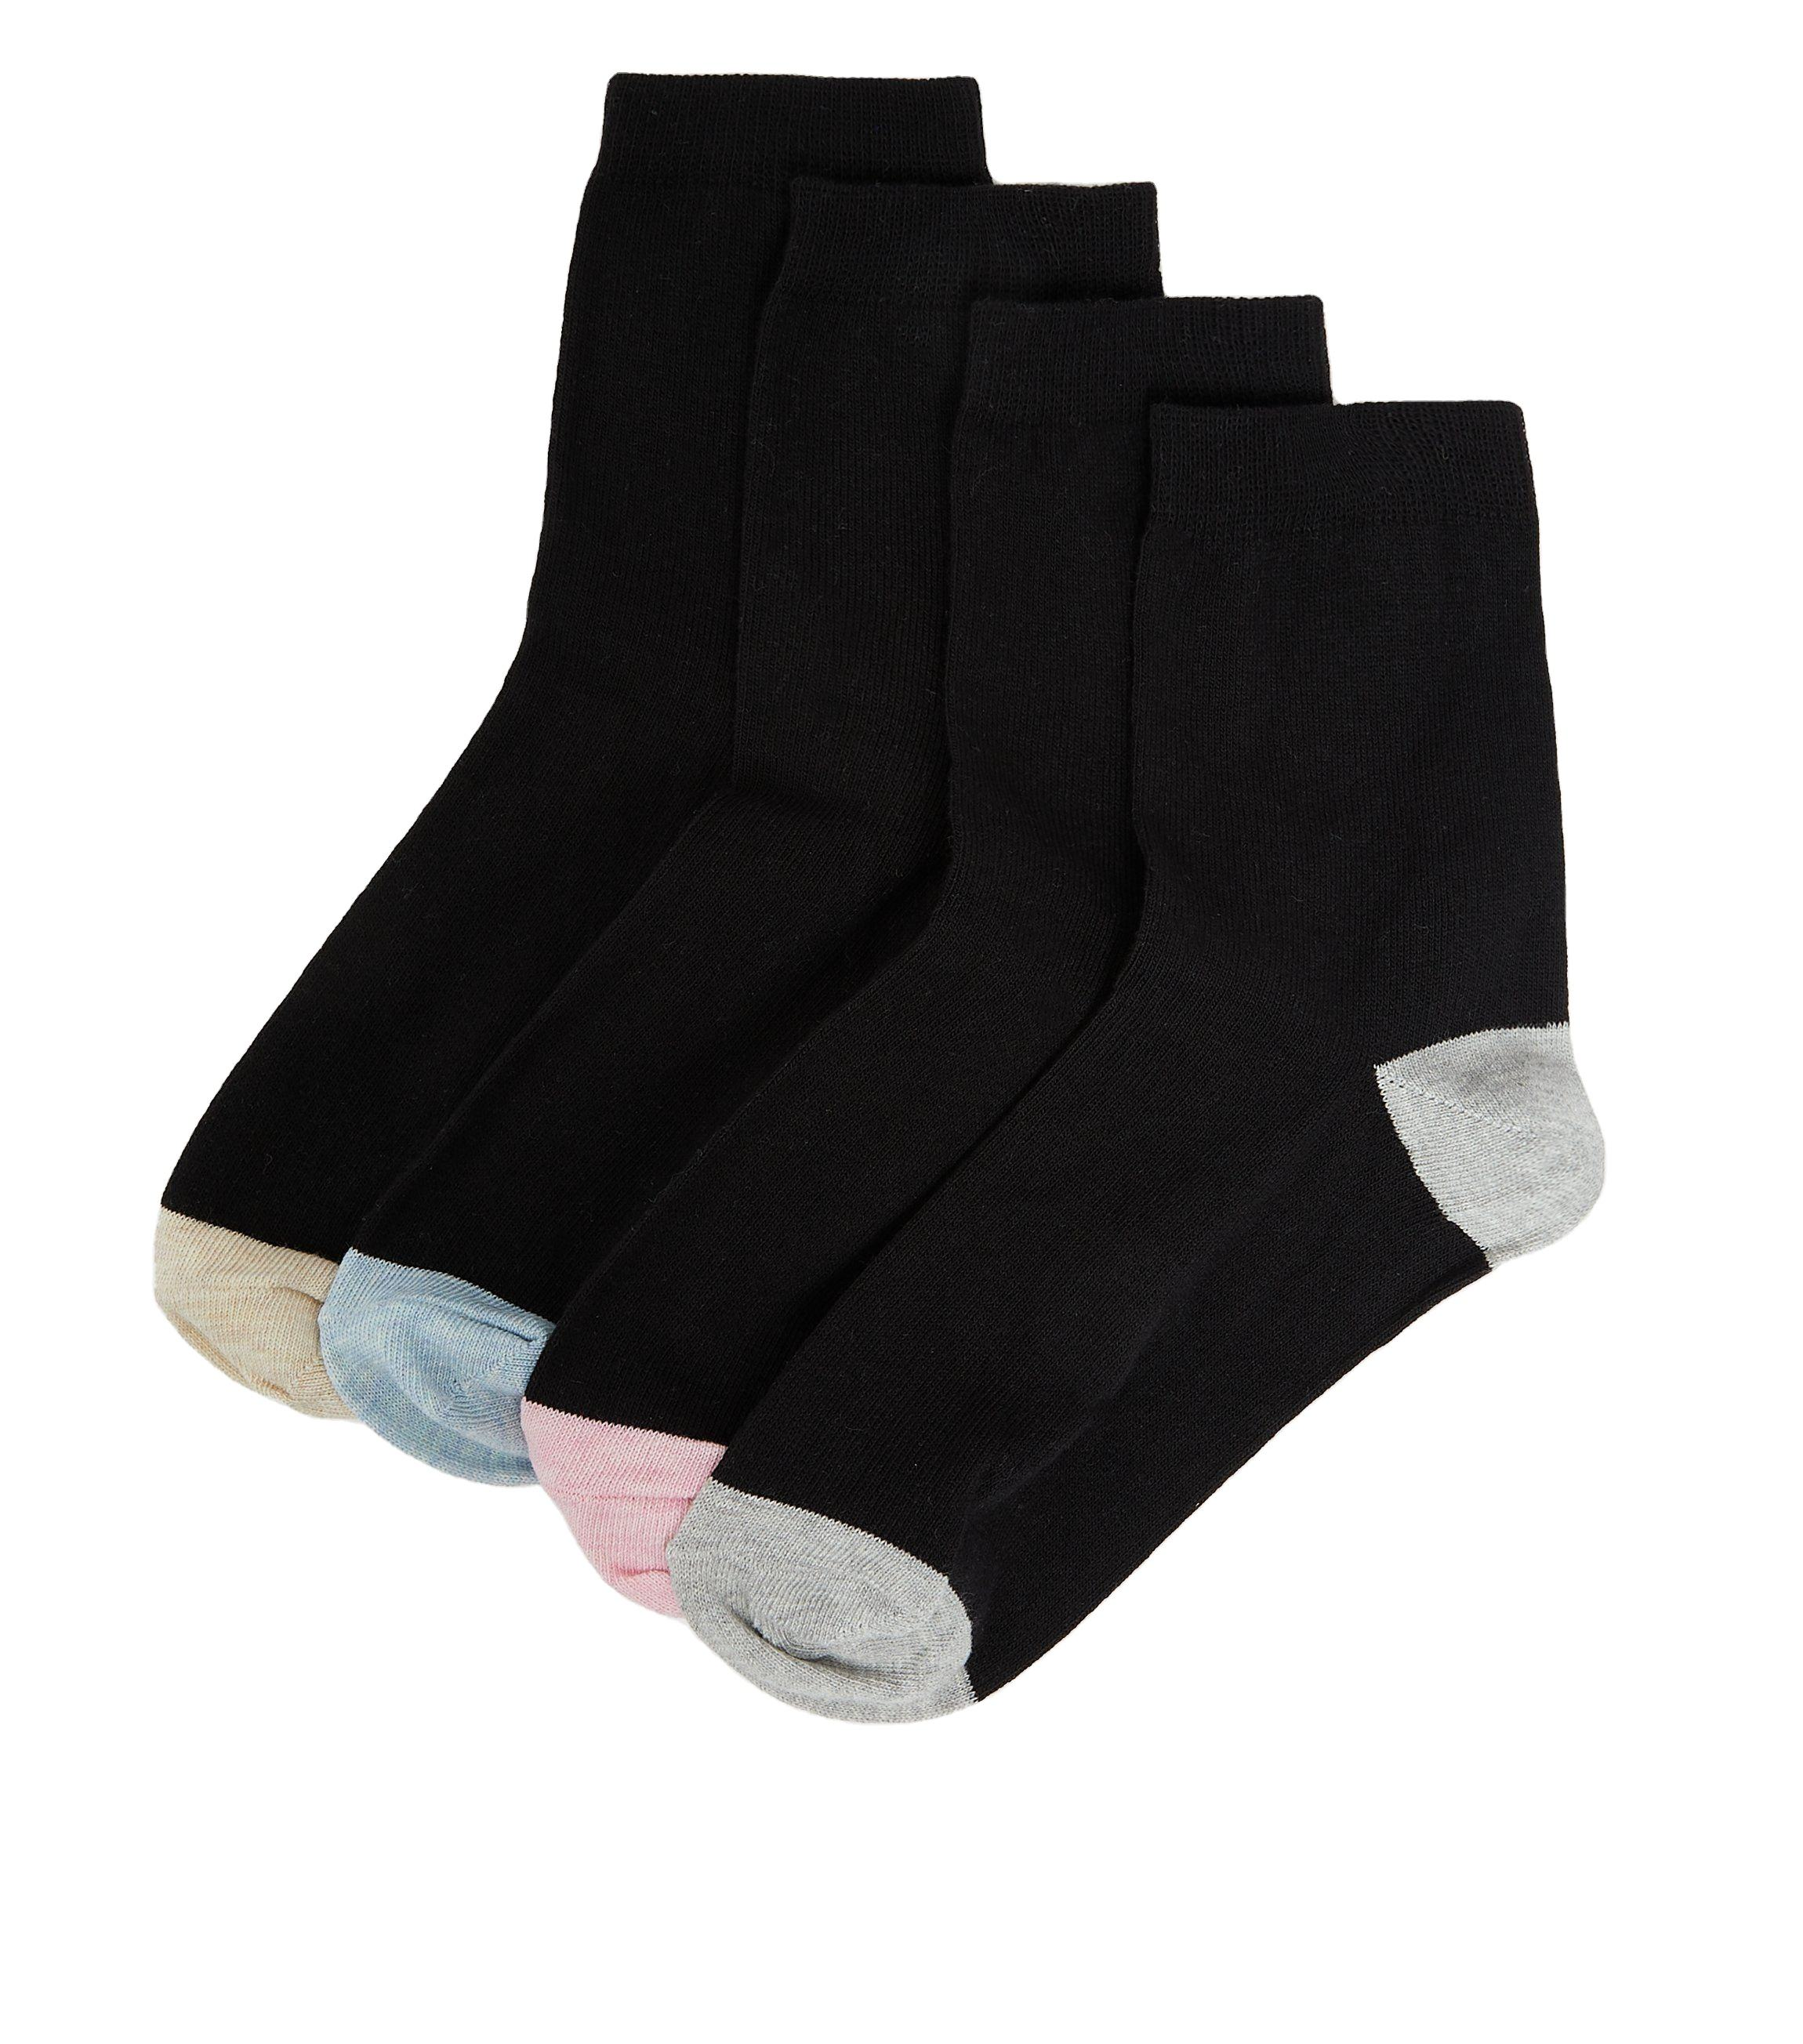 Black Color Block Ankle Socks High Quality Soft Socks